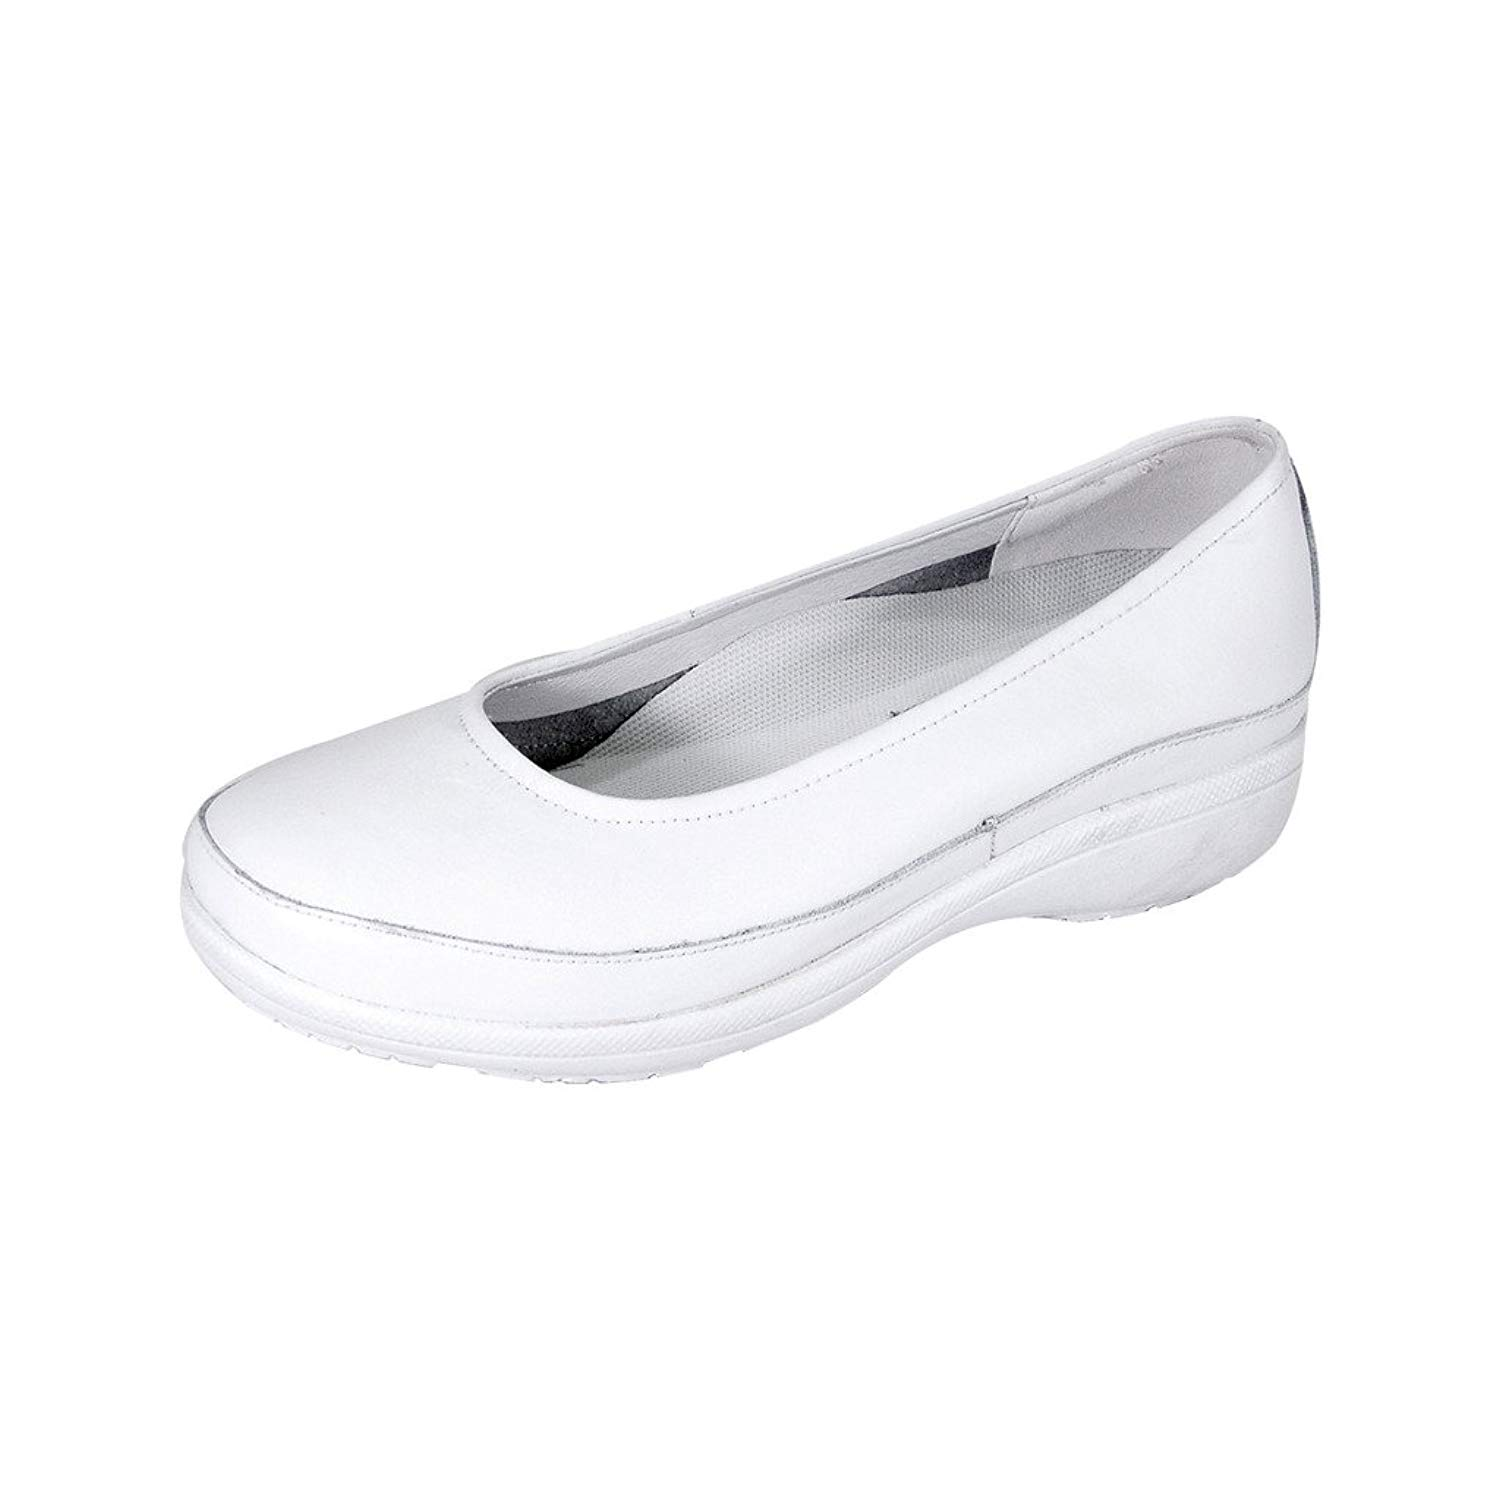 e3d517151a6 Get Quotations · 24 Hour Comfort Janine Women Adjustable Wide Width Durable  and Lightweight Step in Shoes